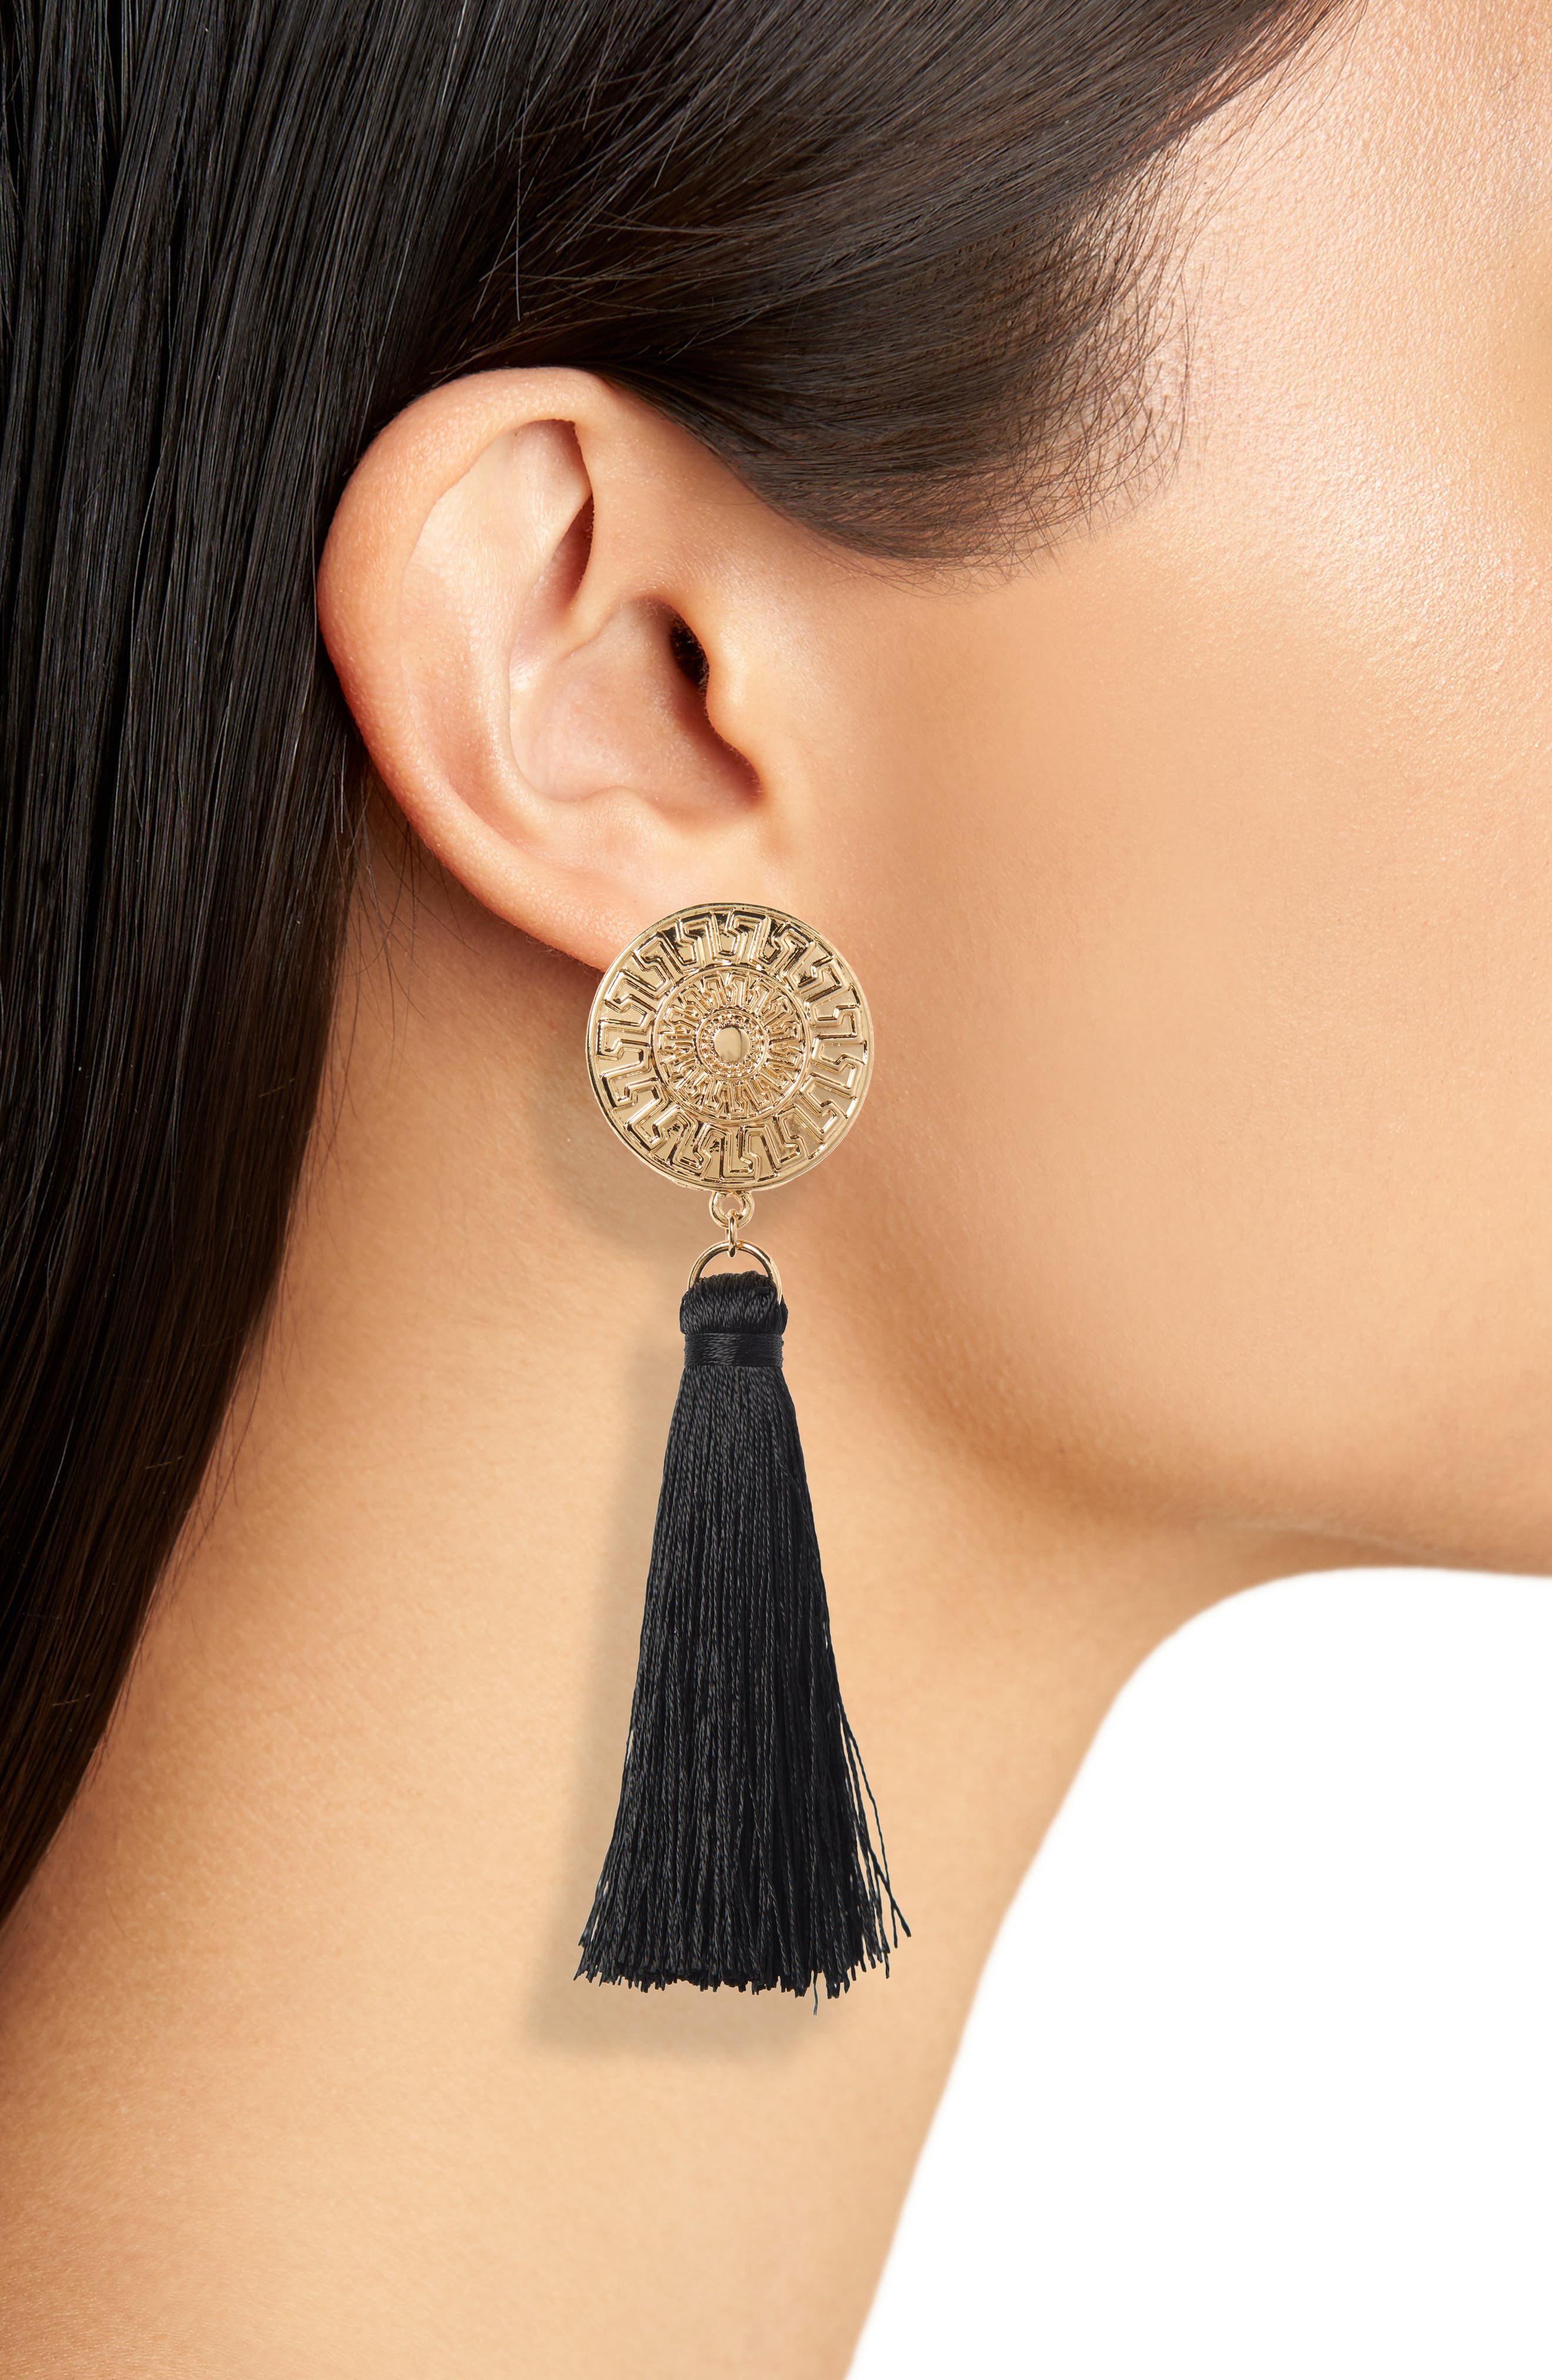 Golden Coin Tassel Earrings,                             Alternate thumbnail 2, color,                             710